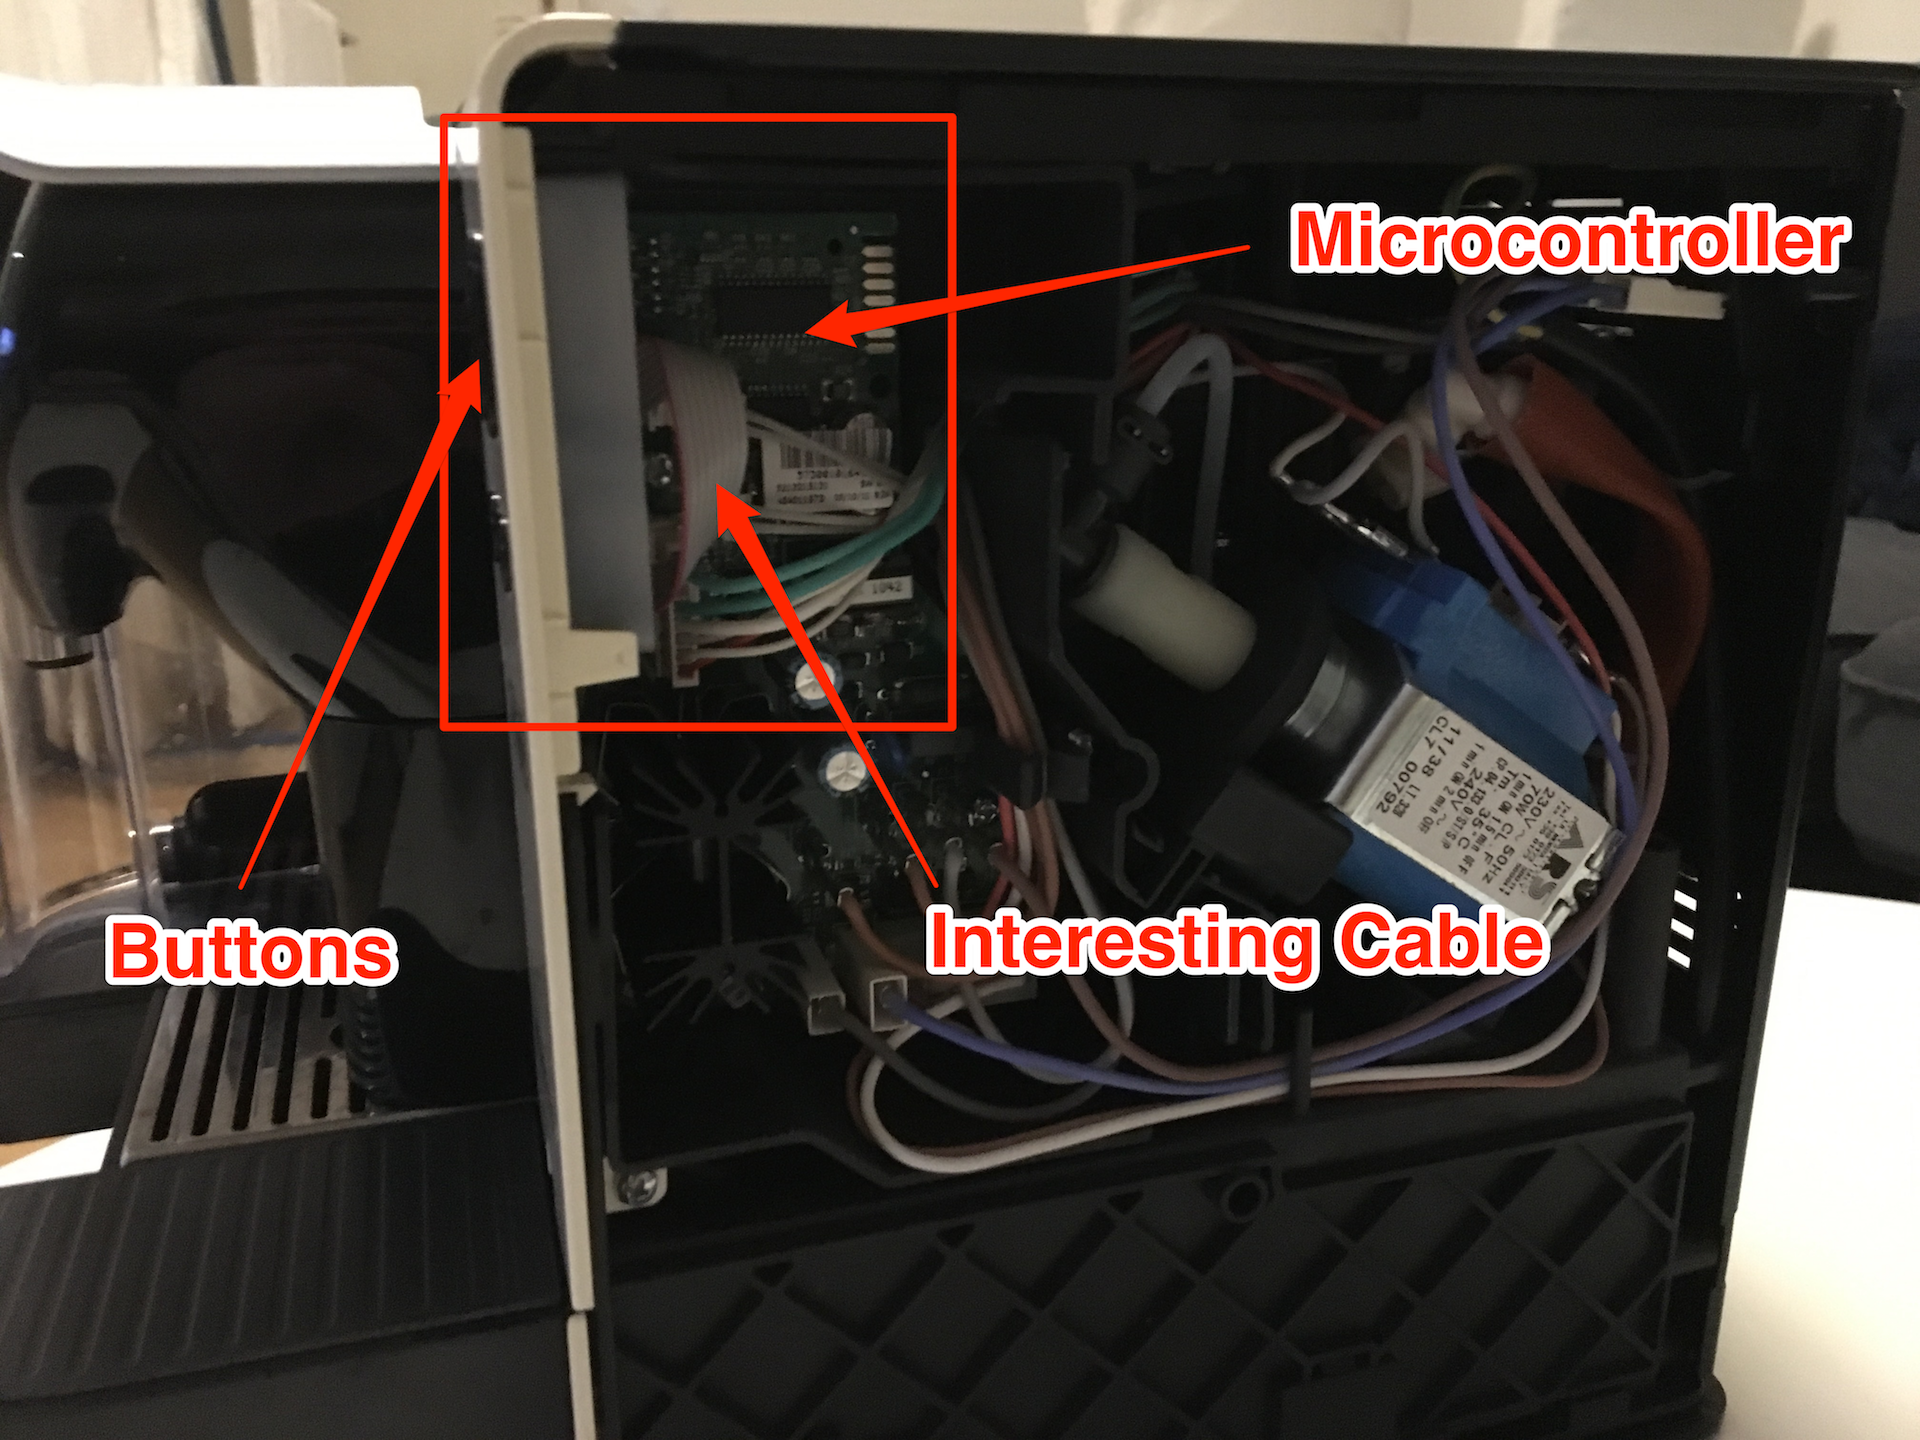 How We Hacked Our Coffee Machine With Javascript Moin World 8 Pin Relay Wiring Diagram Normally Open 1 3 Annotated Picture Of Opened Latissima Highlighting Buttons And Microcontroller